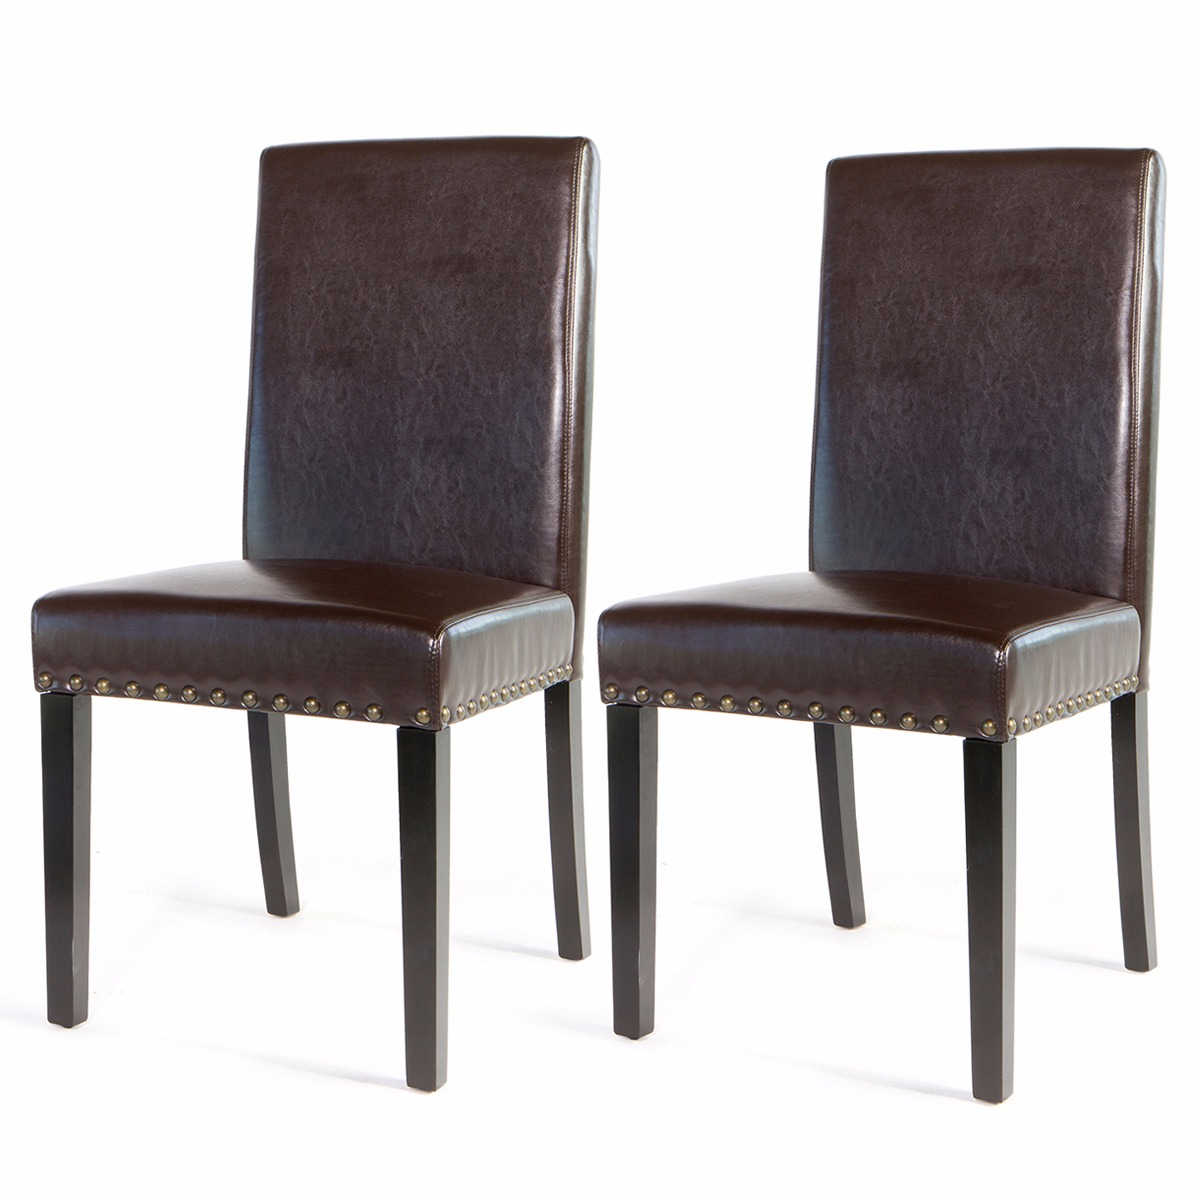 Sef of 2 Barton Luxury Stylish Nail Head Leather Dining Chair Extra Large, Brown